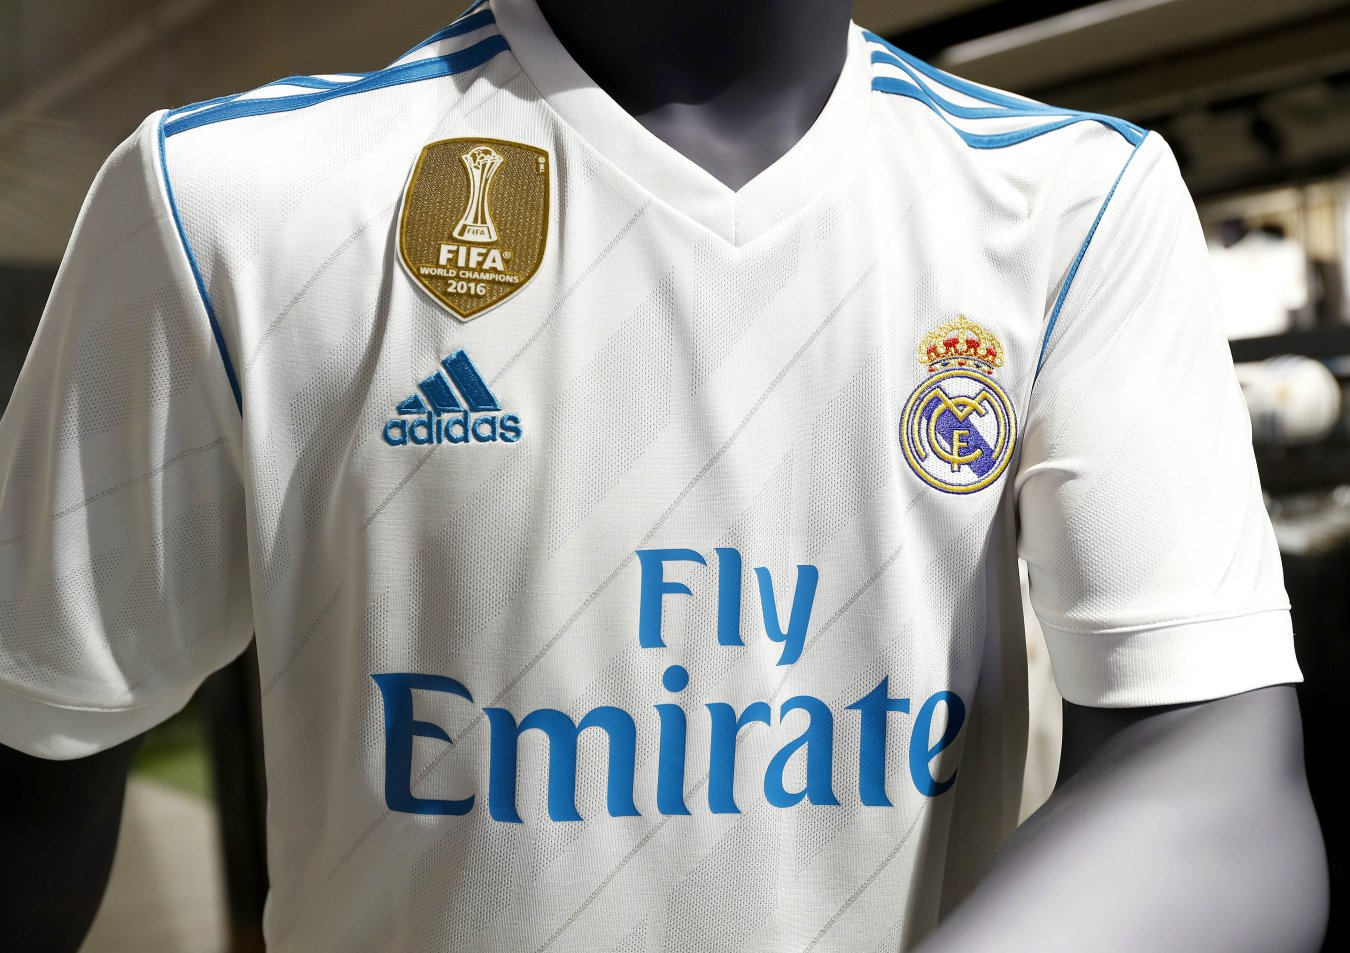 3b0123f1530a8 El Real Madrid presenta sus camisetas para la 2017-2018 - AS Colombia